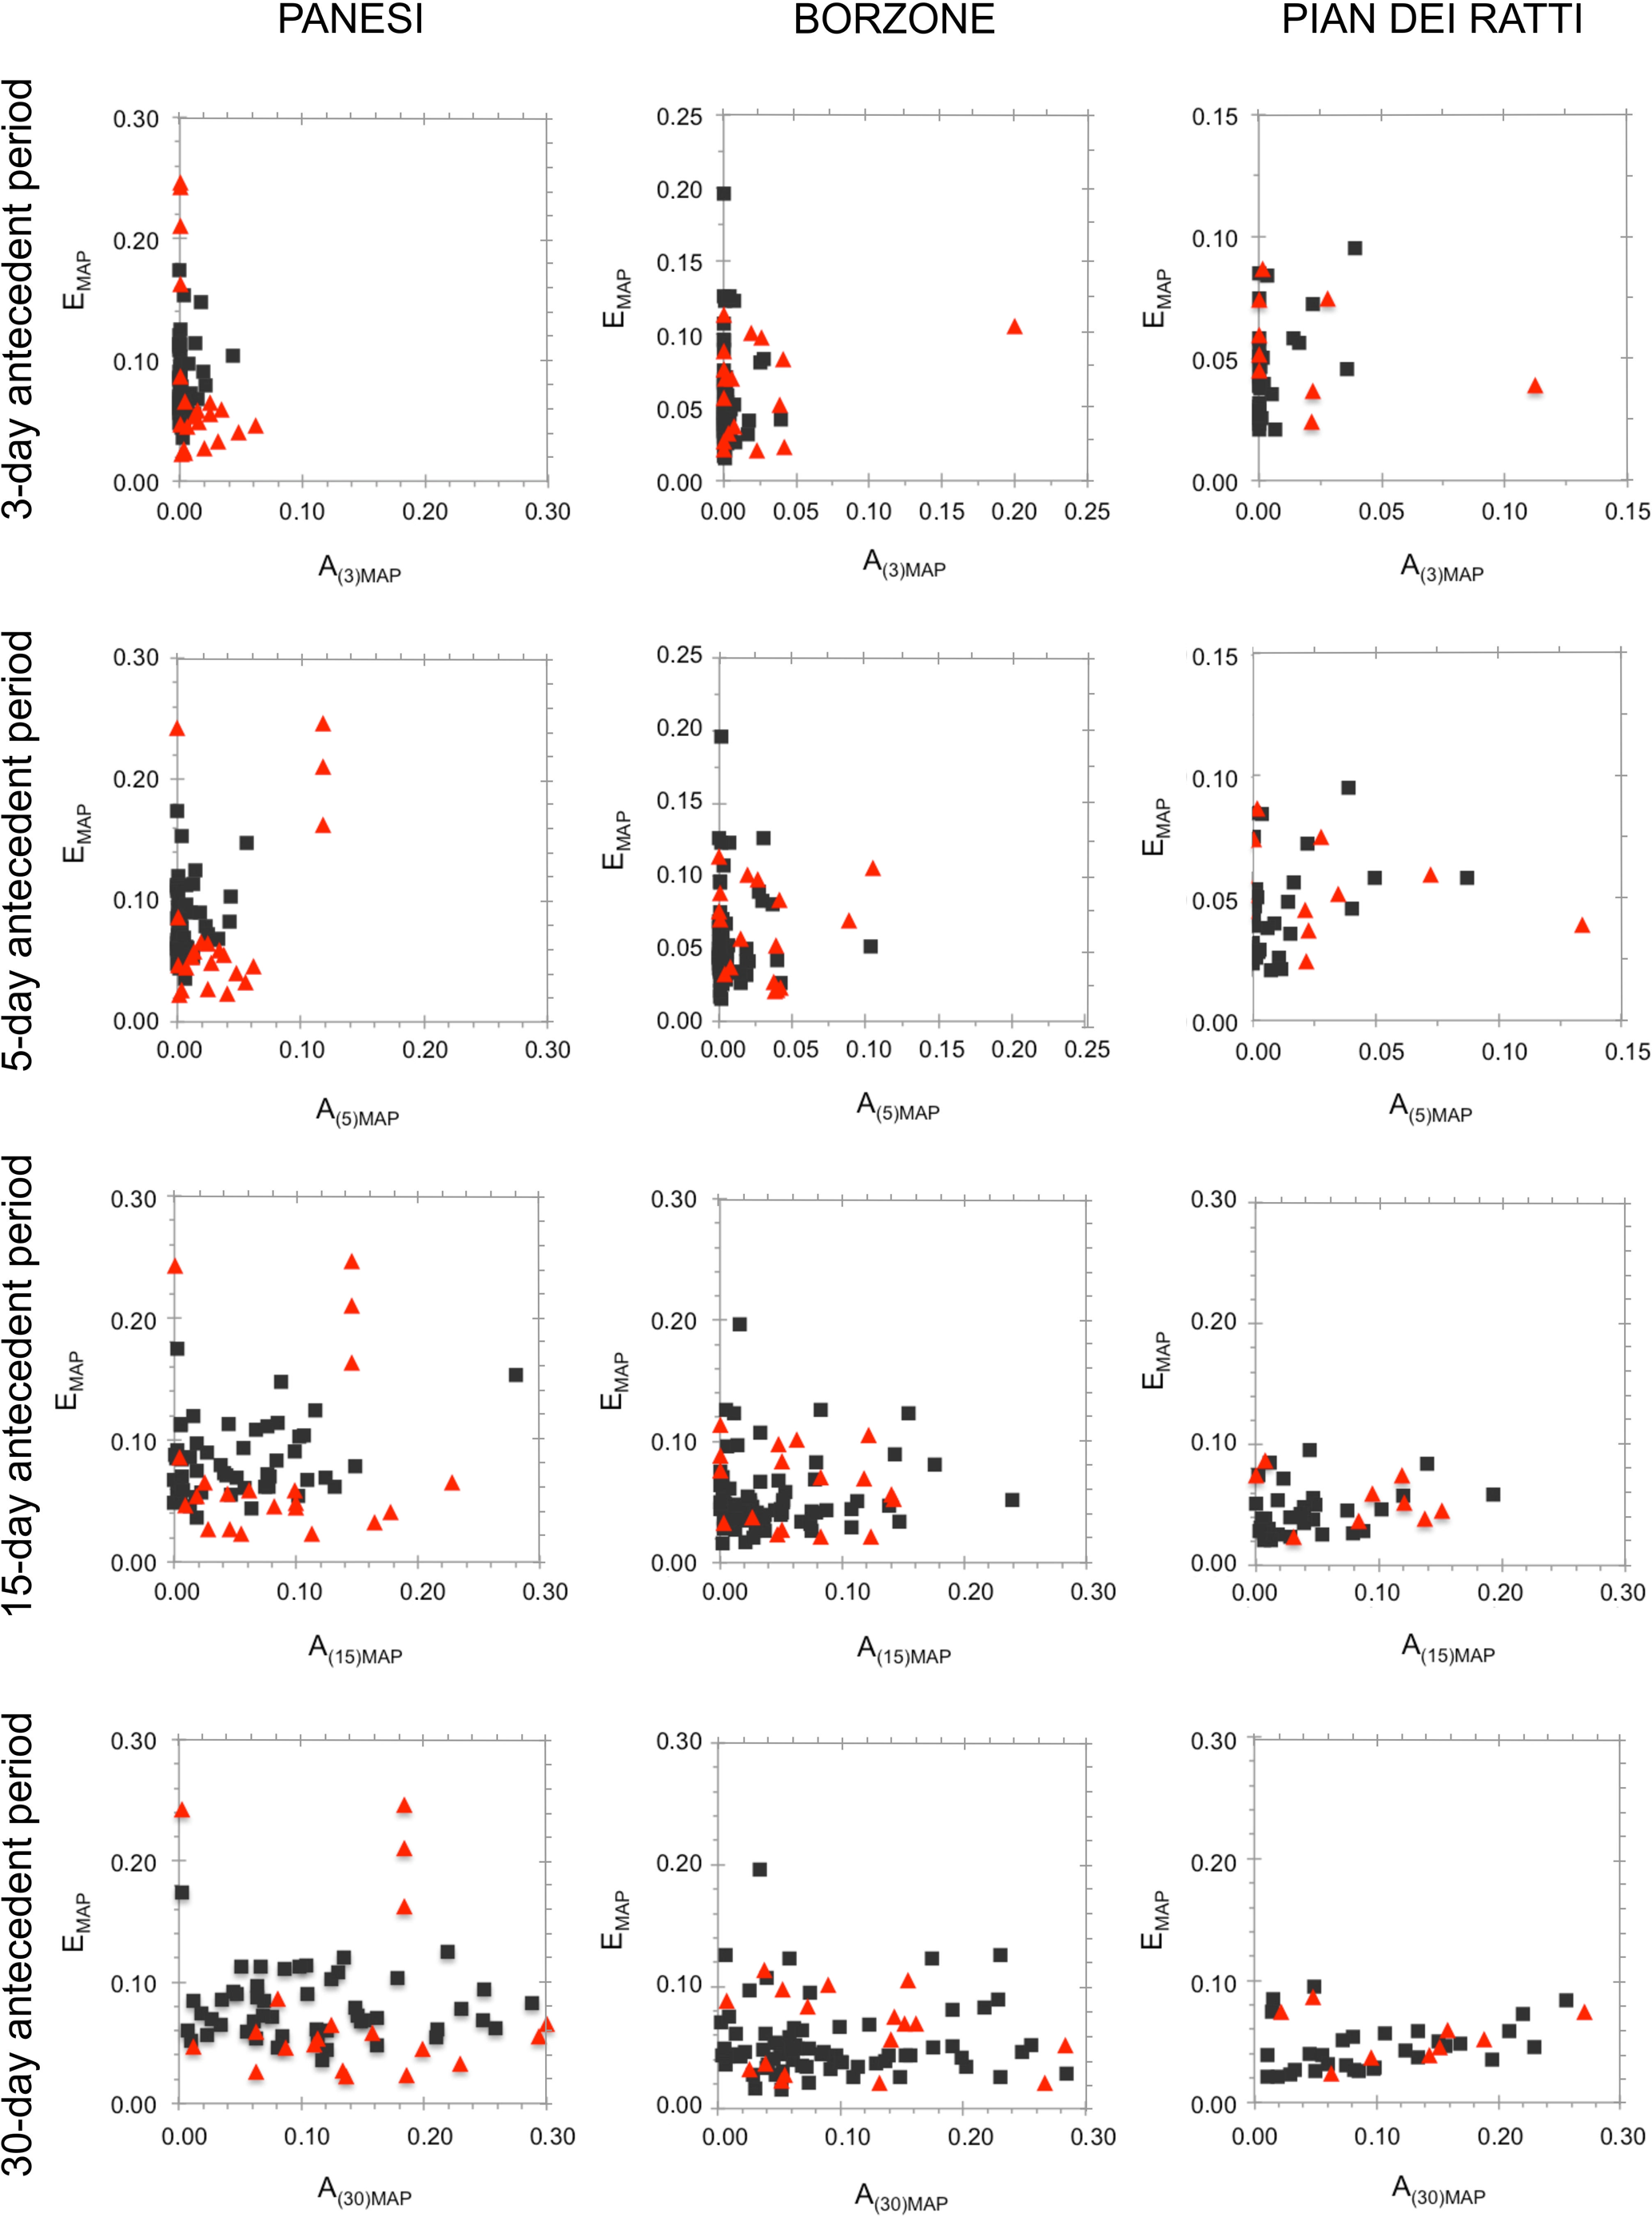 NHESS - Rainfall events with shallow landslides in the Entella